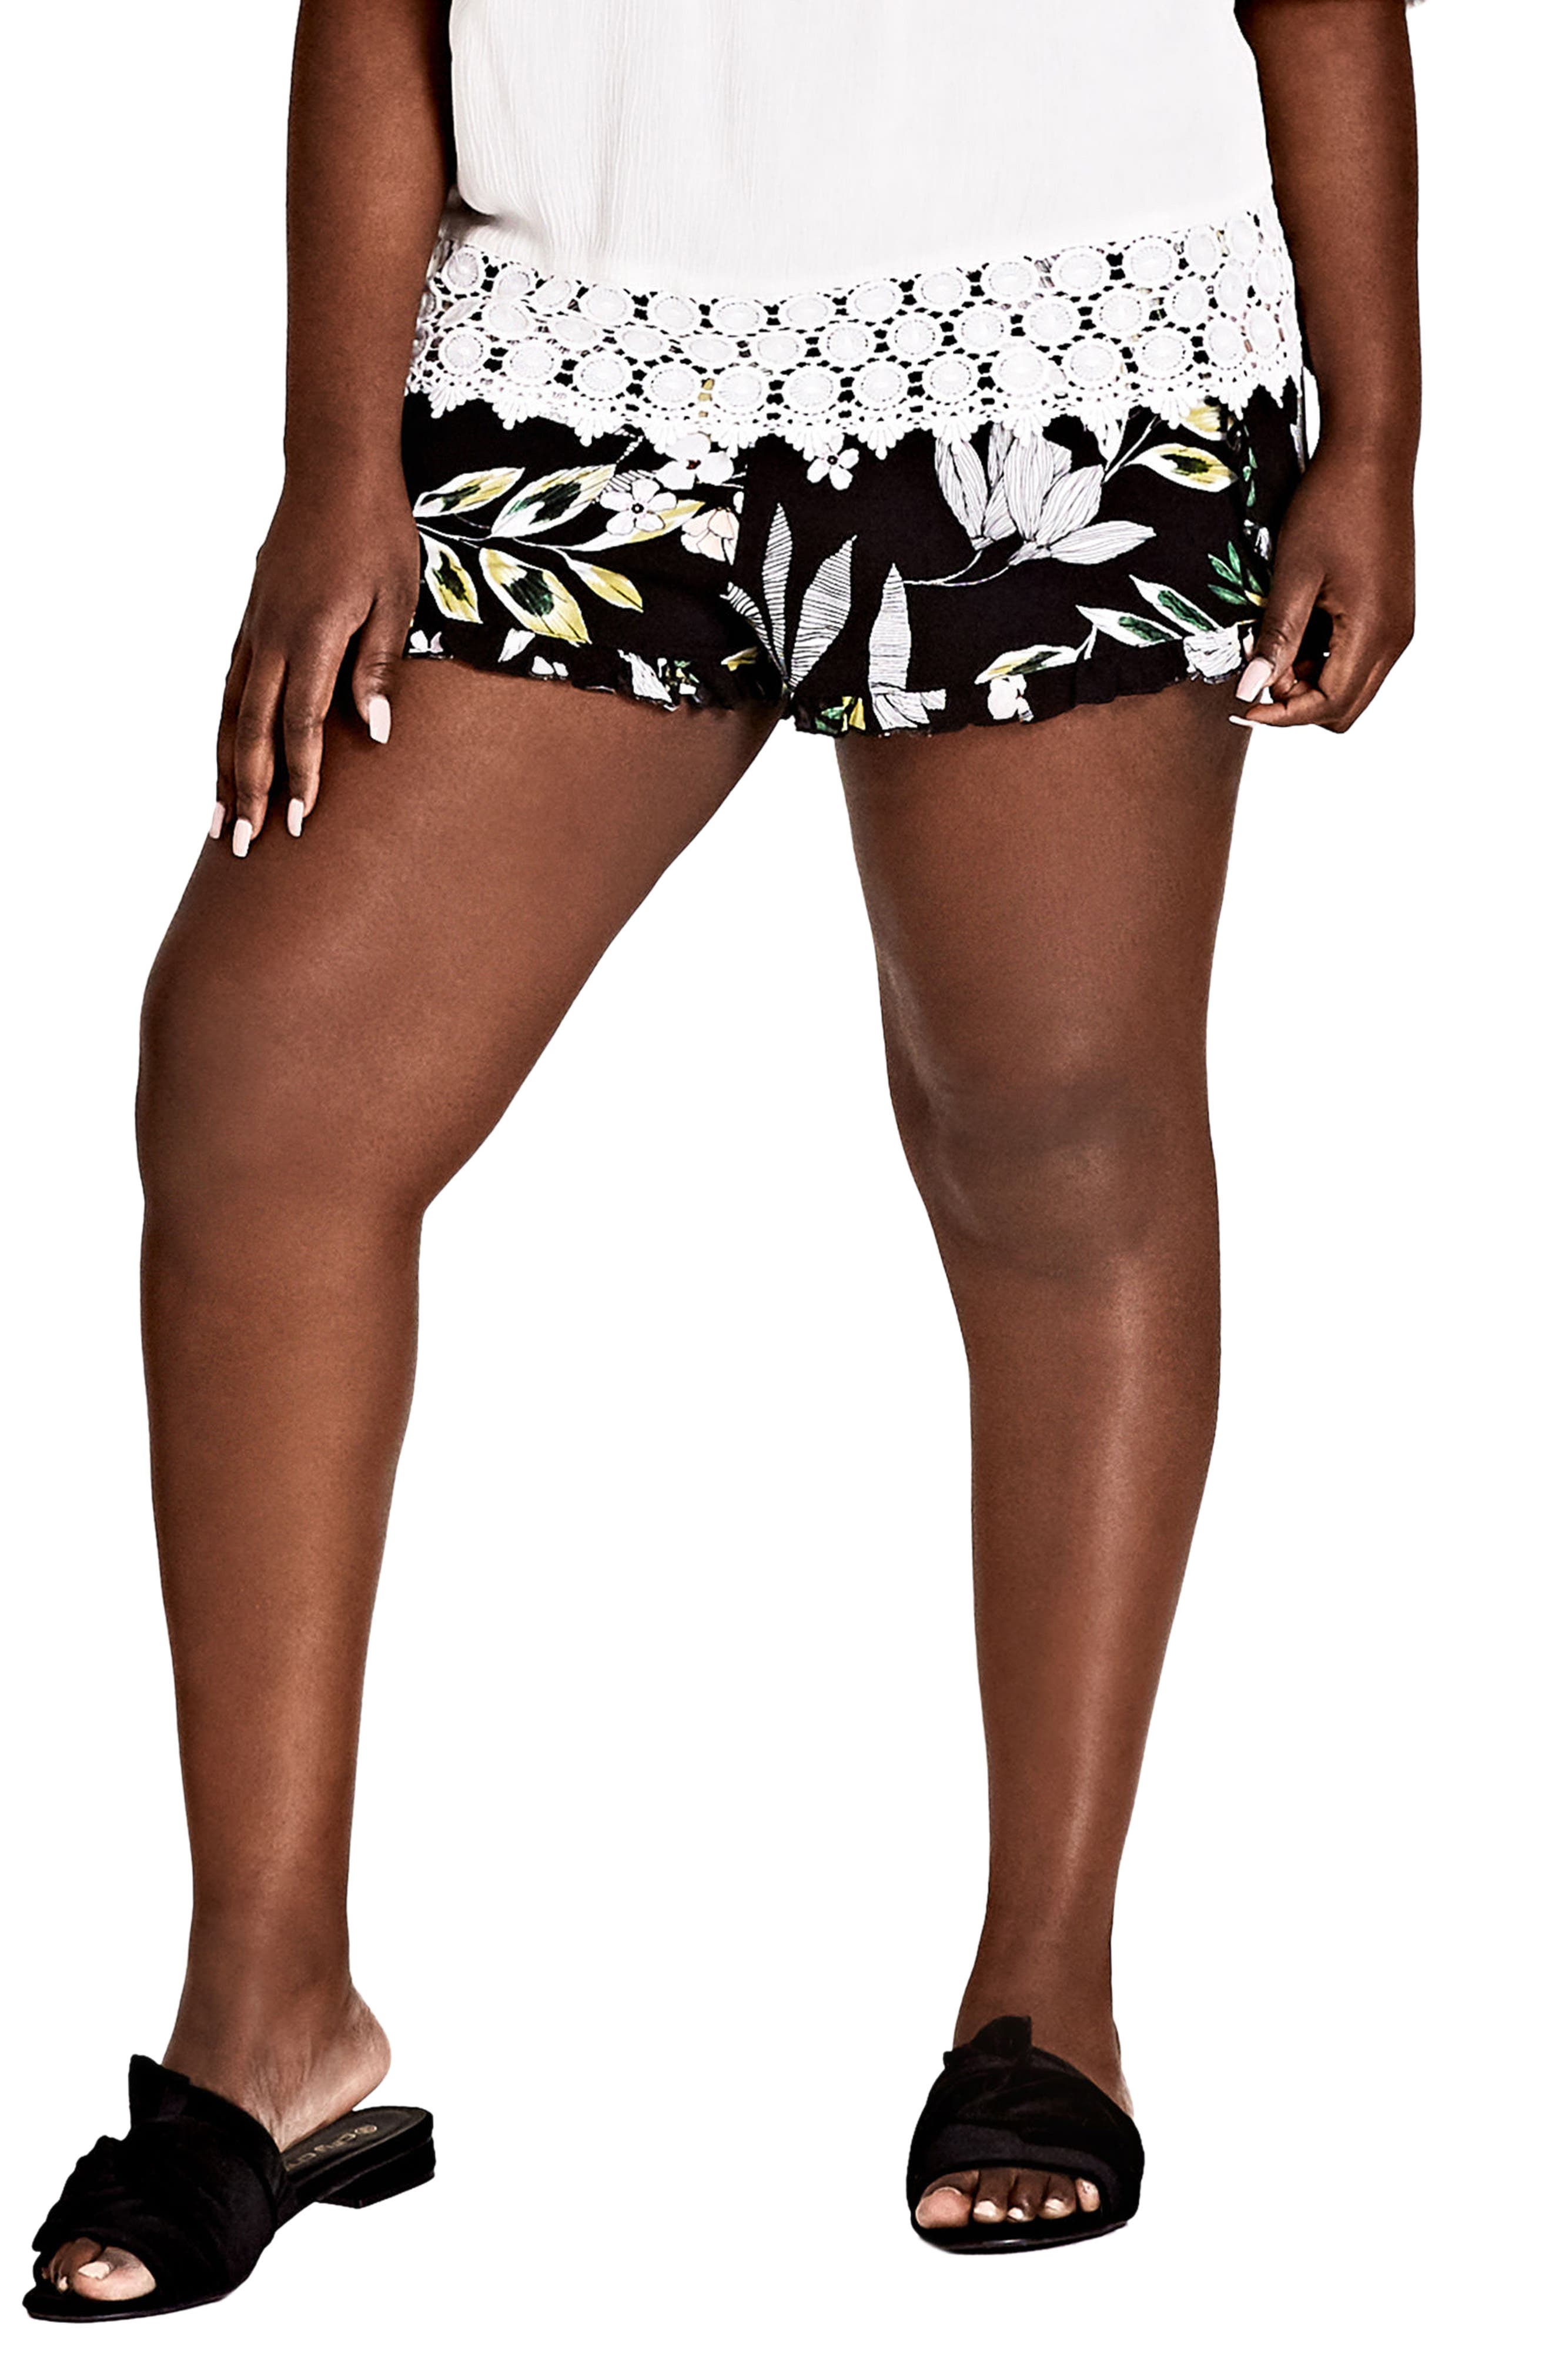 Maui Floral Pull-On Shorts,                         Main,                         color, Maui Floral